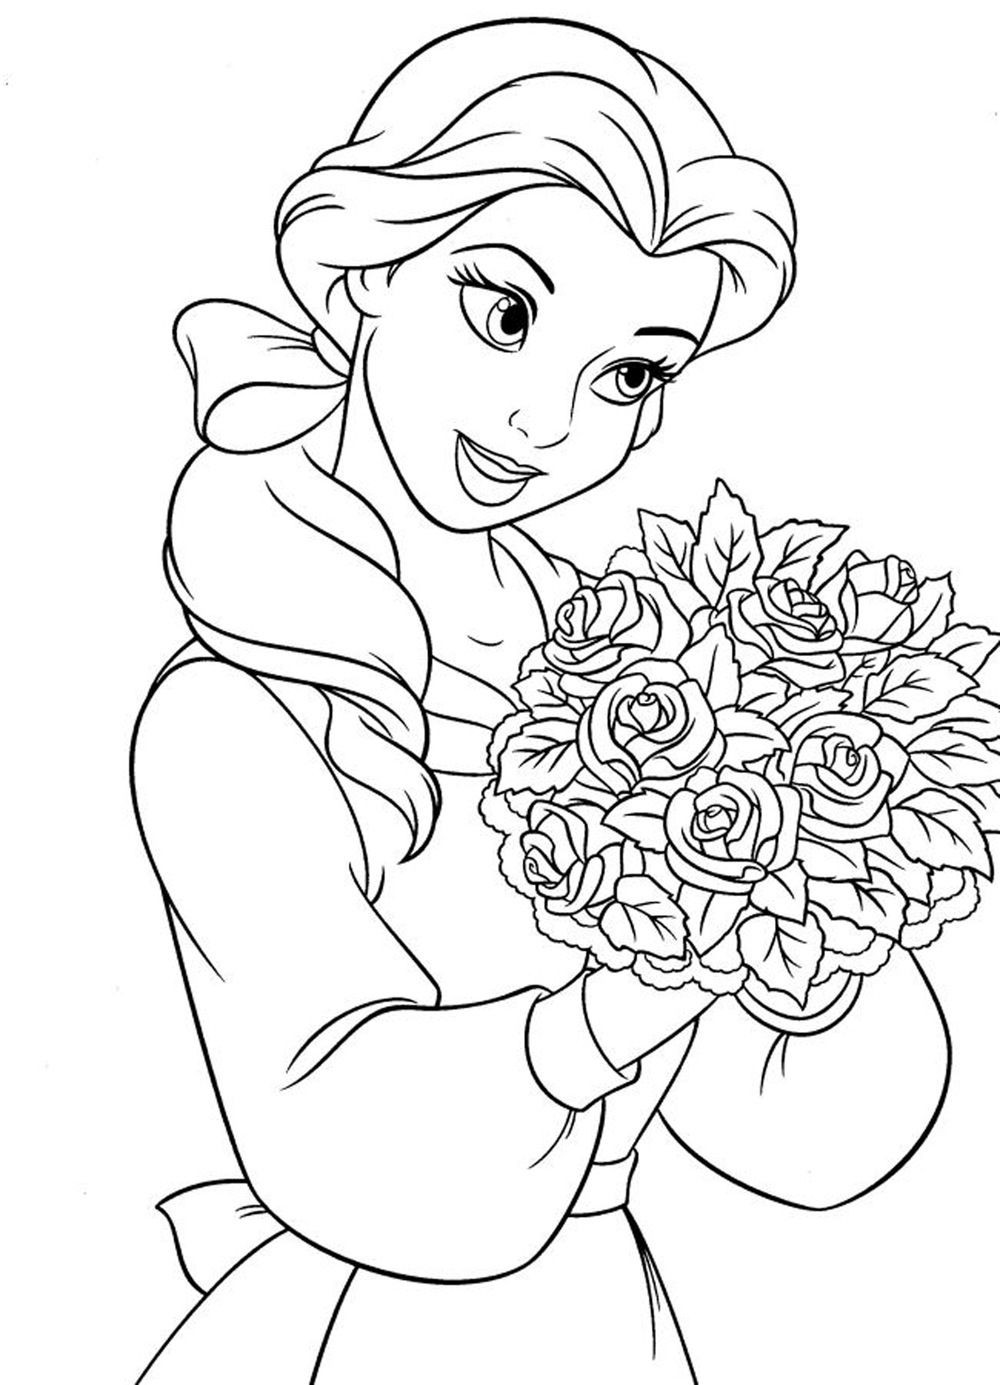 Best ideas about Disney Coloring Sheets For Girls . Save or Pin princess coloring pages for girls Free Now.